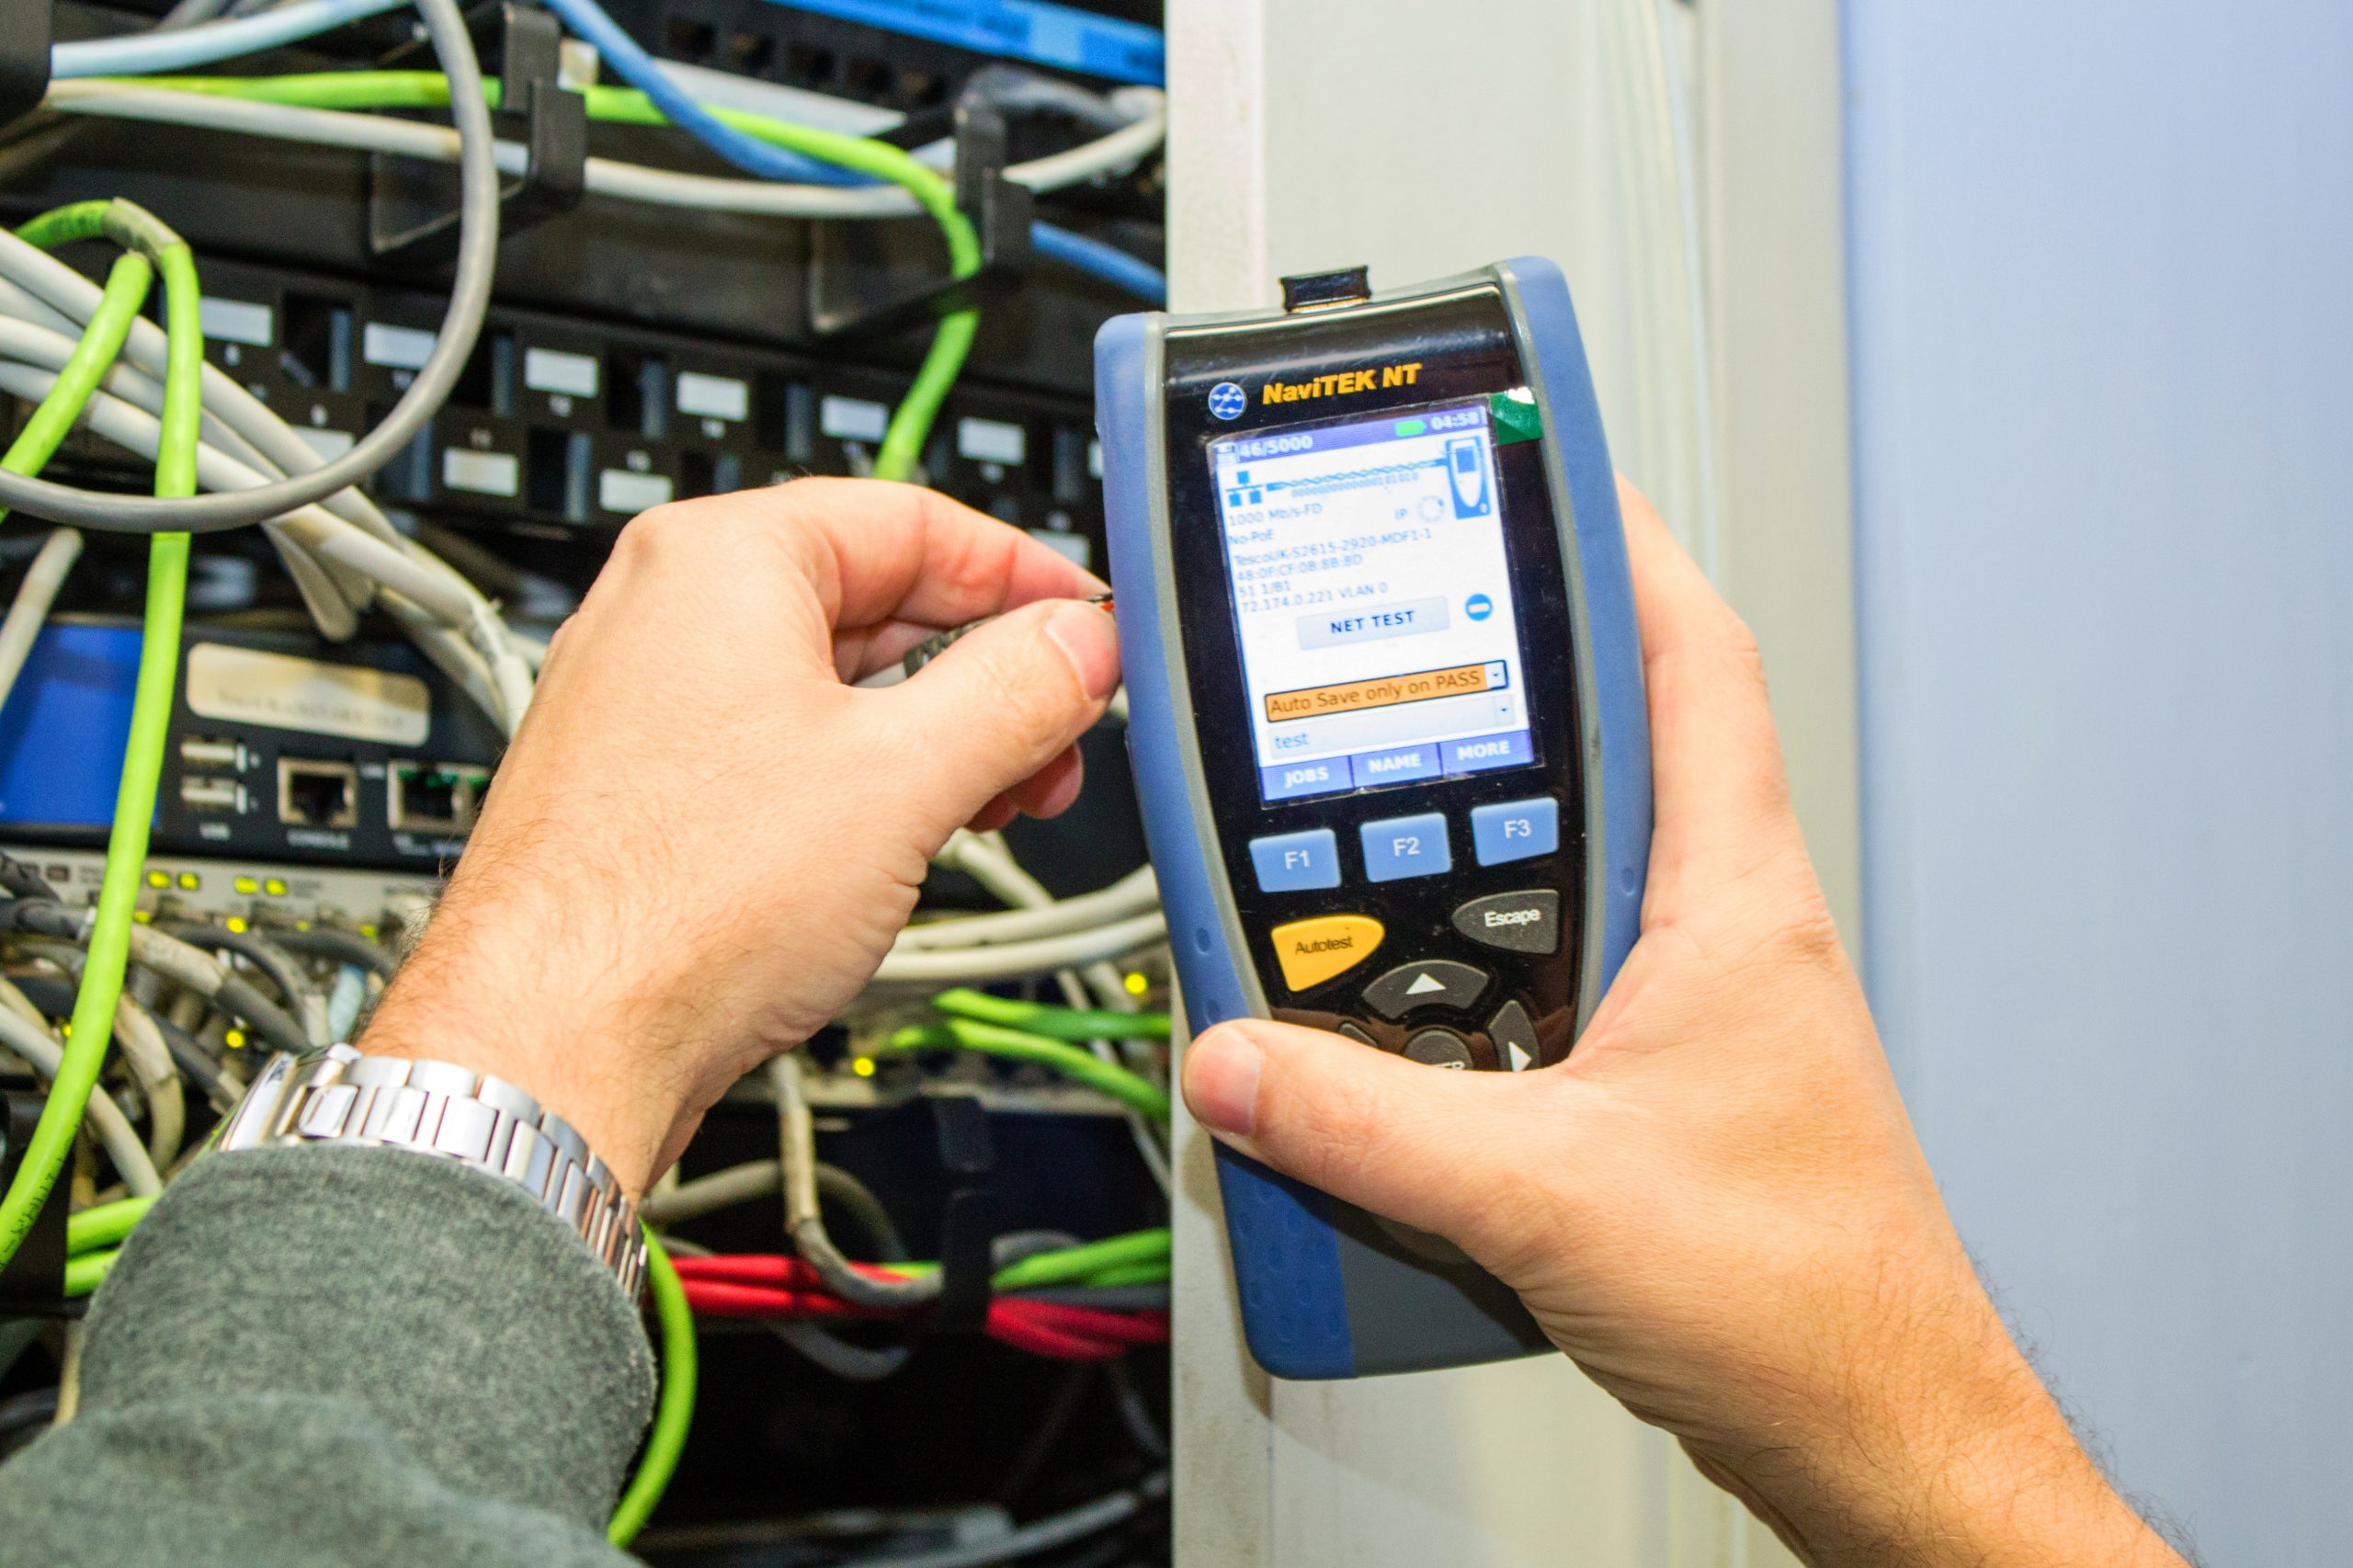 ISG Technology, a network service business, has experienced benefits beyond cost effectiveness and time saving, when installing cables and network troubleshooting, with the IDEAL Networks handheld NaviTEK NT Pro.